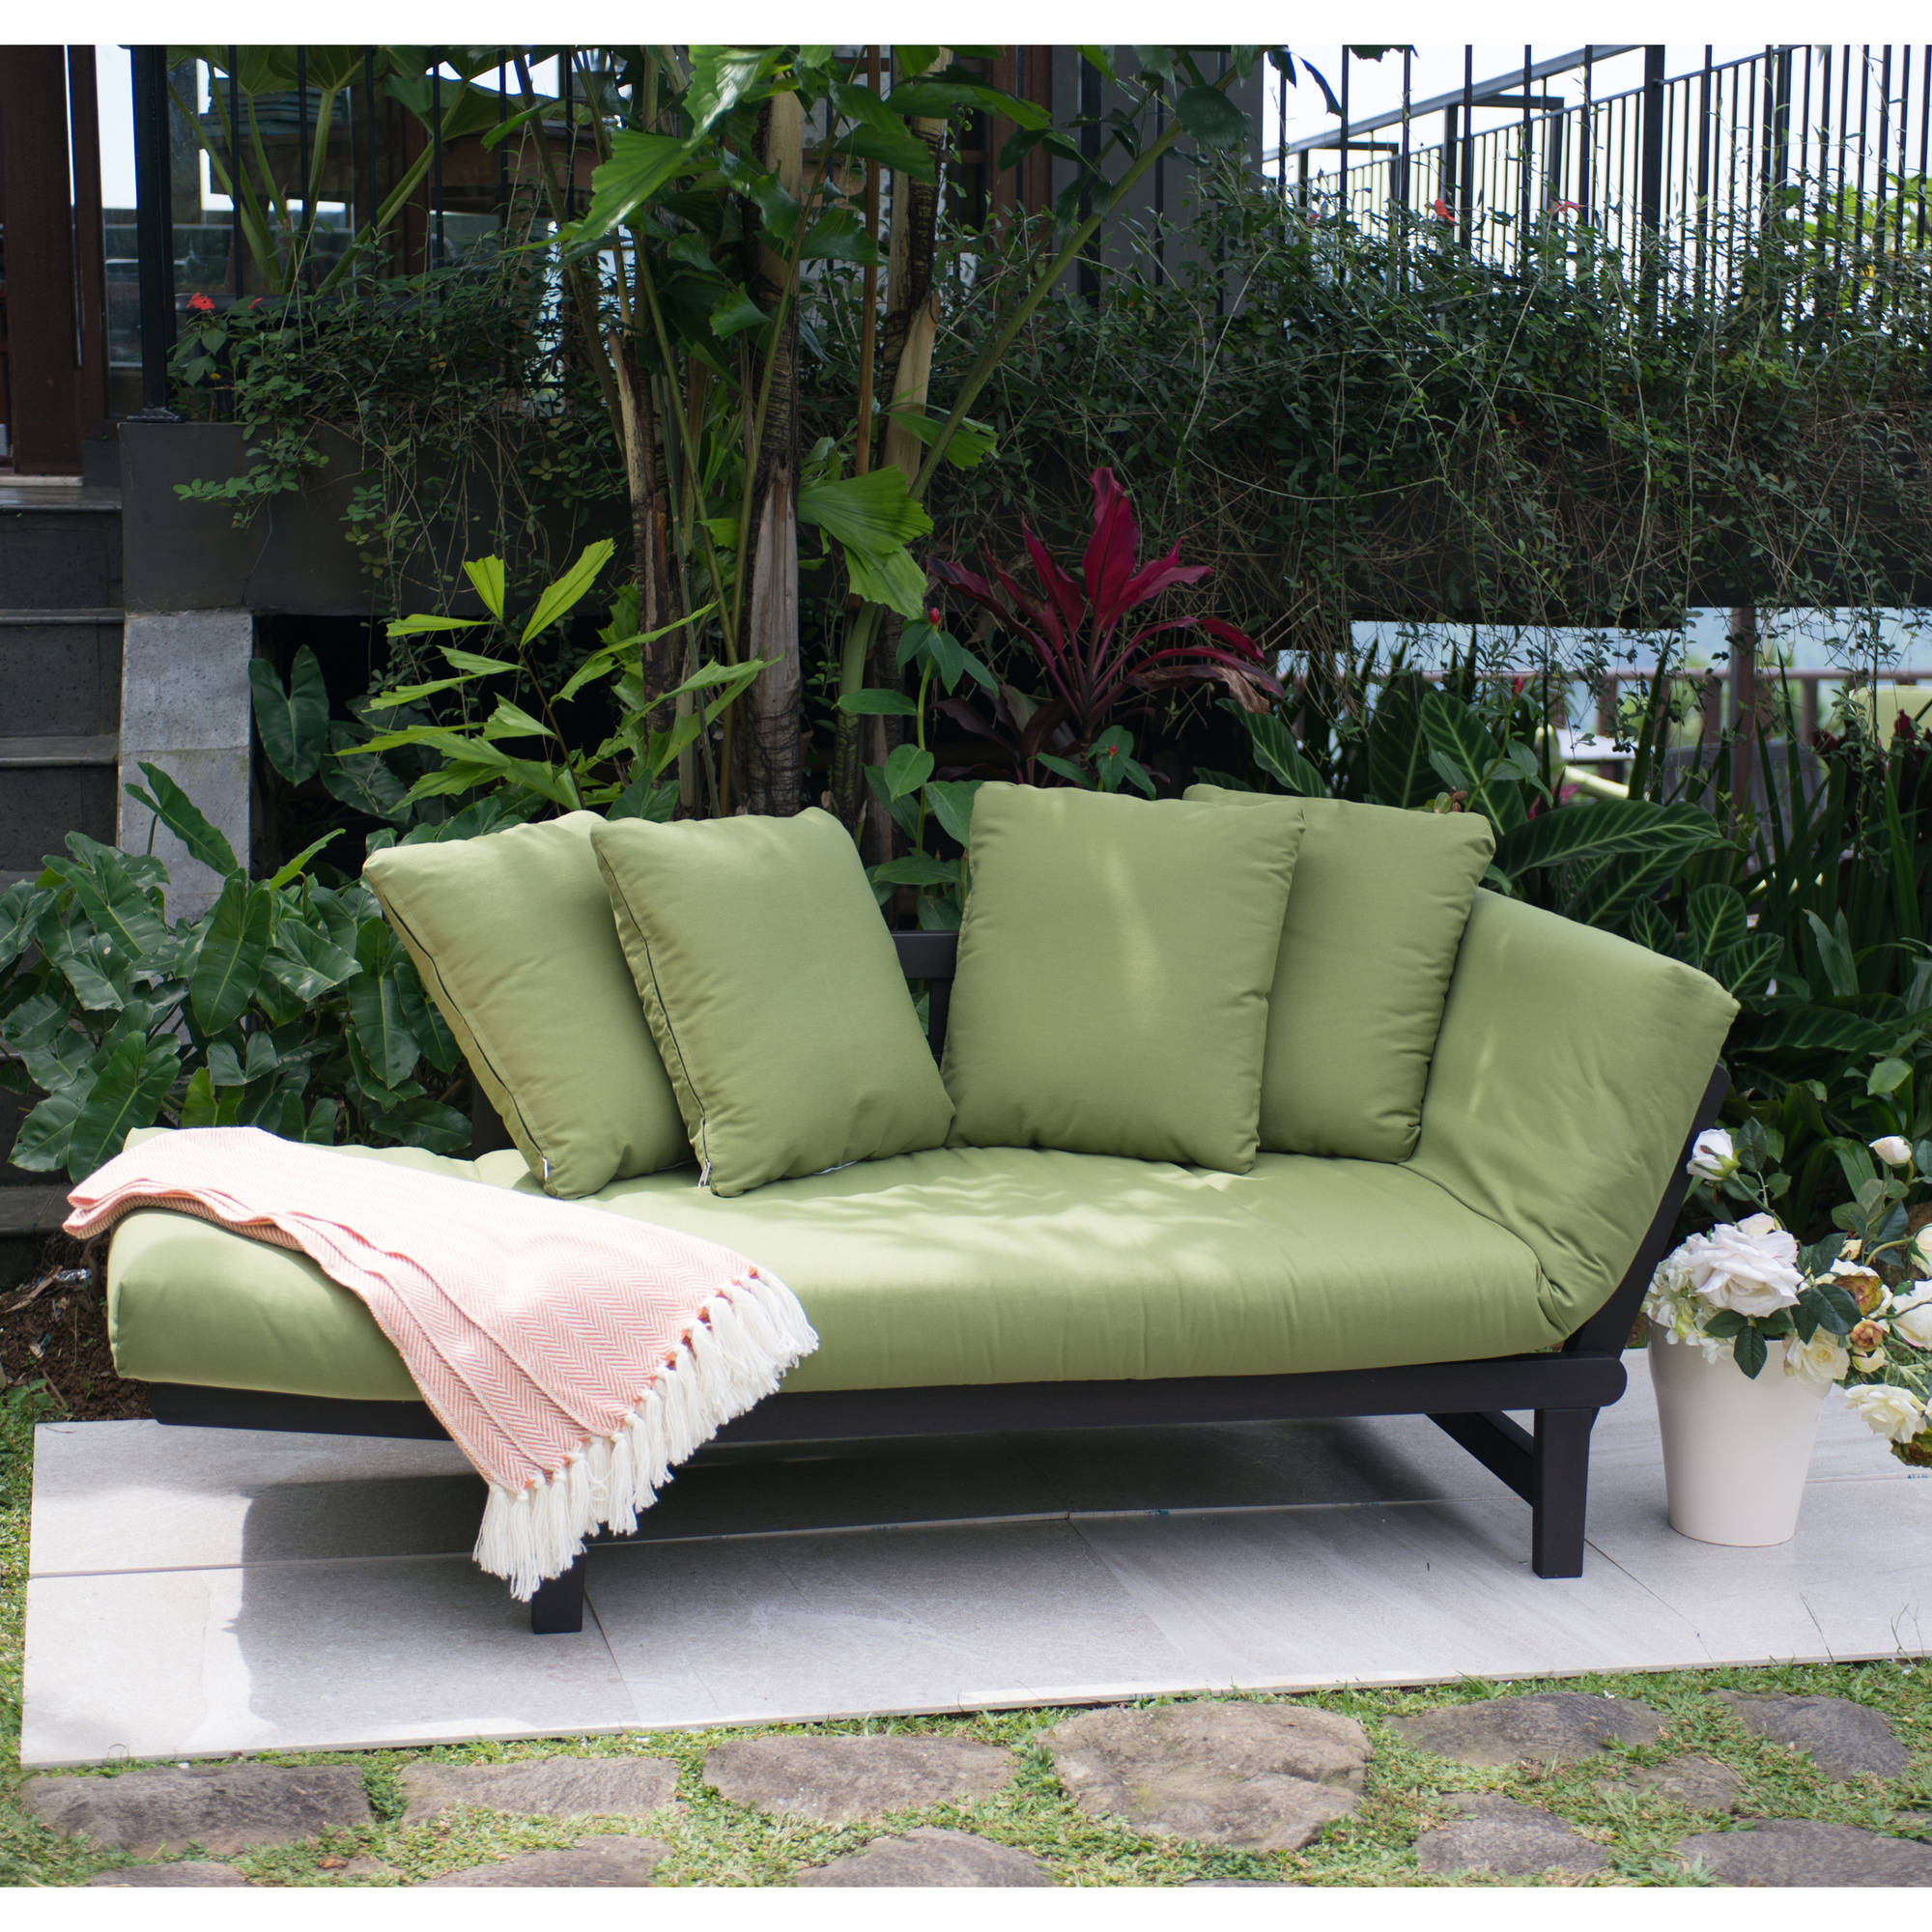 Best And Newest Patio Daybeds With Cushions In Better Homes & Gardens Delahey Outdoor Daybed With Cushions – Green (View 5 of 20)